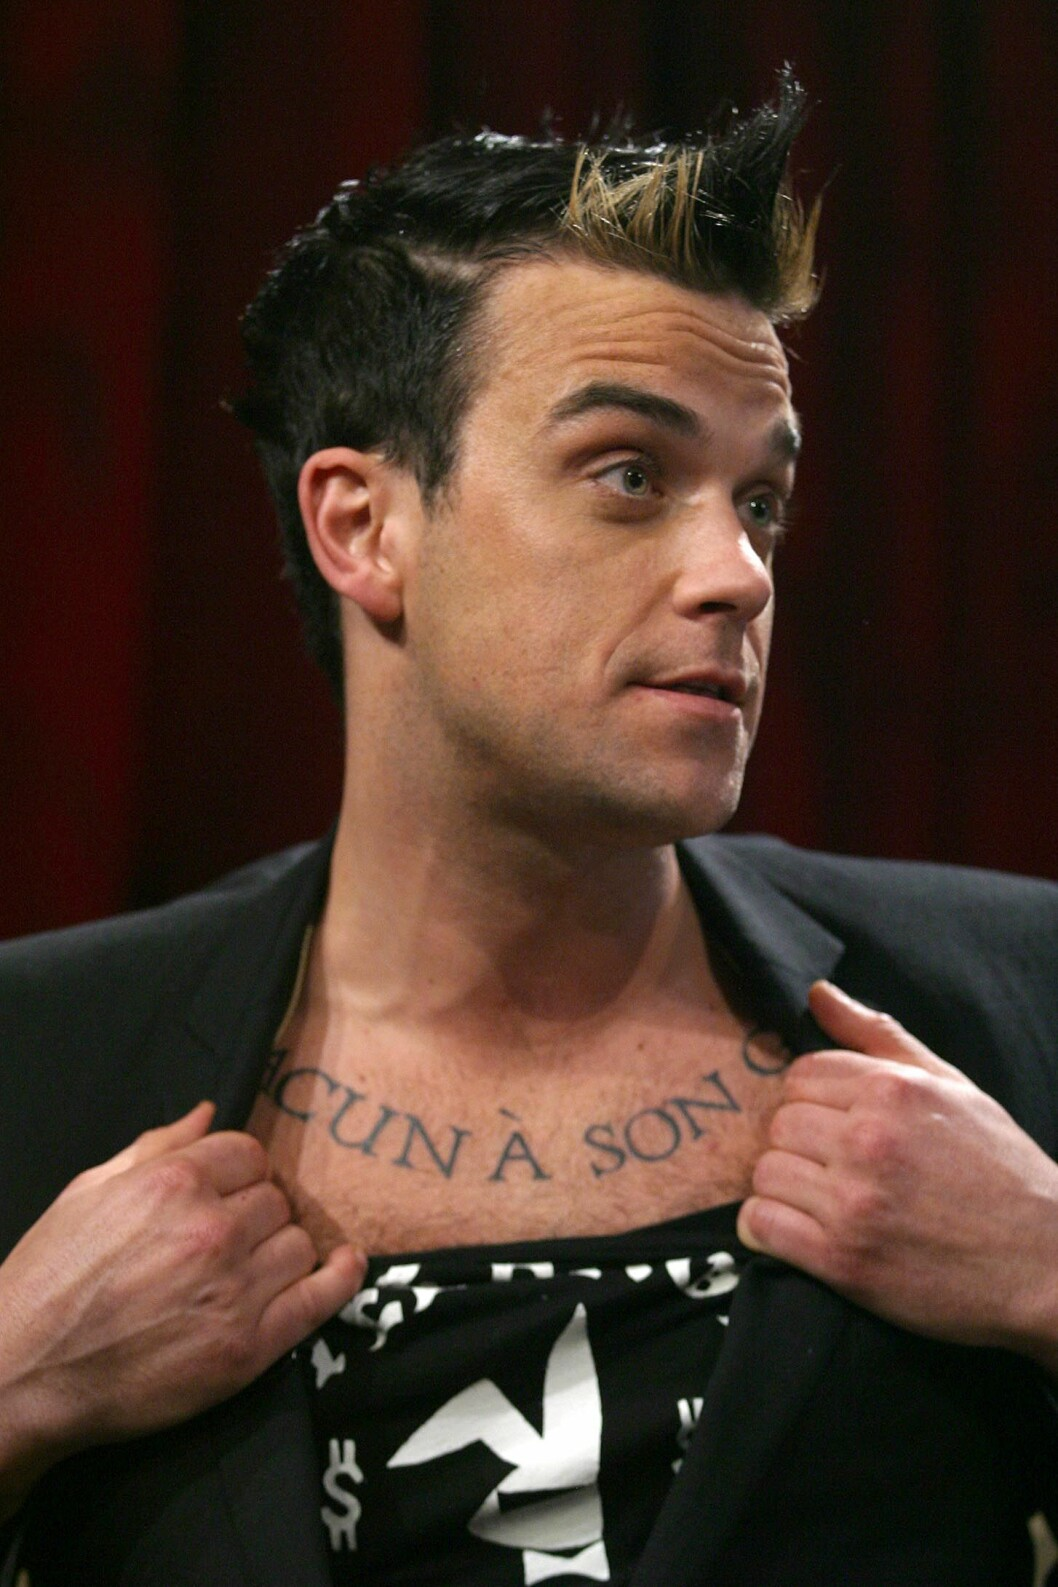 """Code: STAR-Michael Simon, New York, NY, USA, 01.04.2003: Taping of NBC's """" Last Call With Carson Daly"""" Guests: British singer Robbie Williams, Show airs 04-11-03. /Startraks Photo Inc/Michael Simon"""